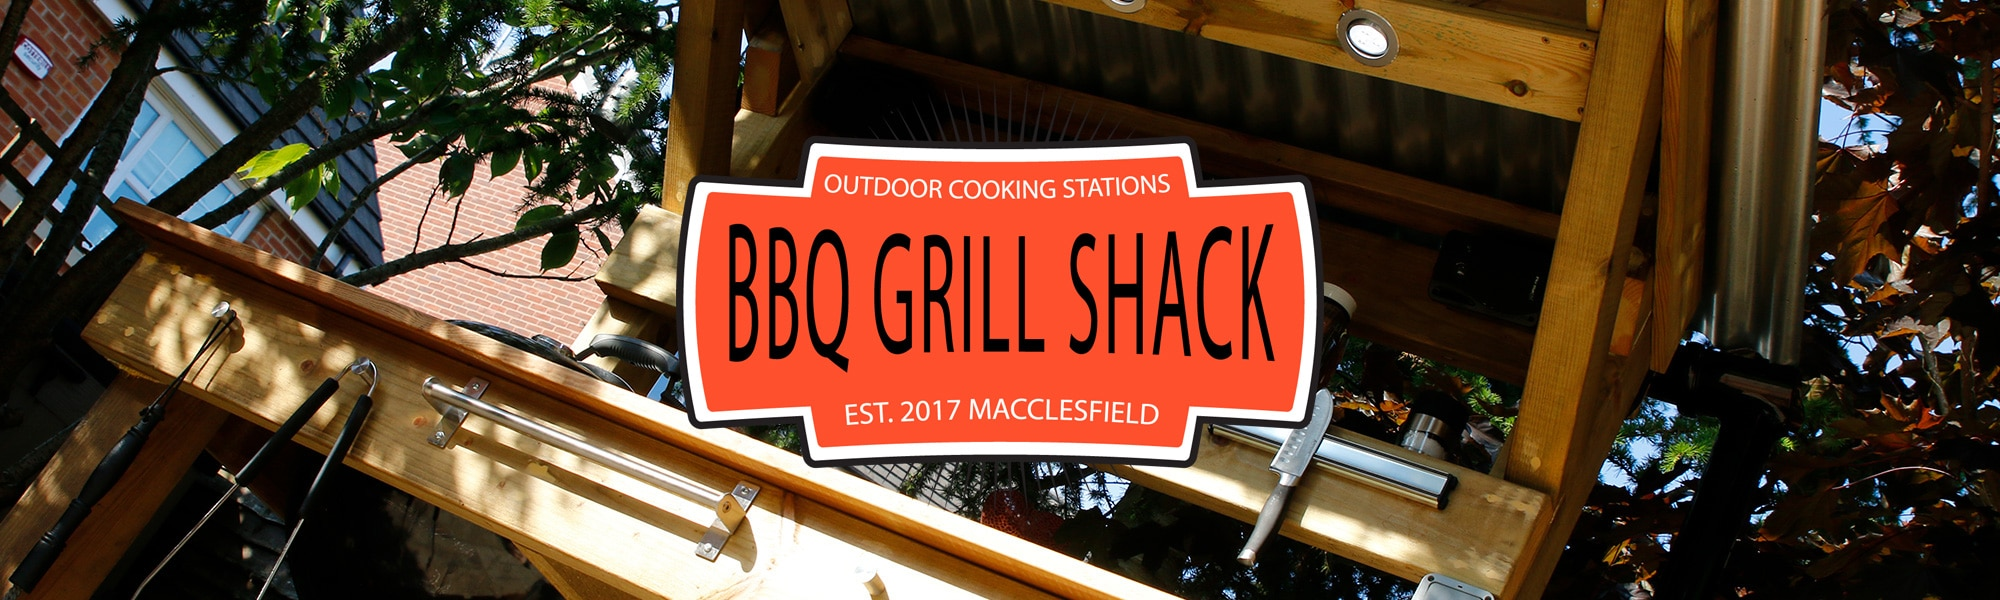 BBQ Grill Shack - About our Shacks, Custom Options and Accessories